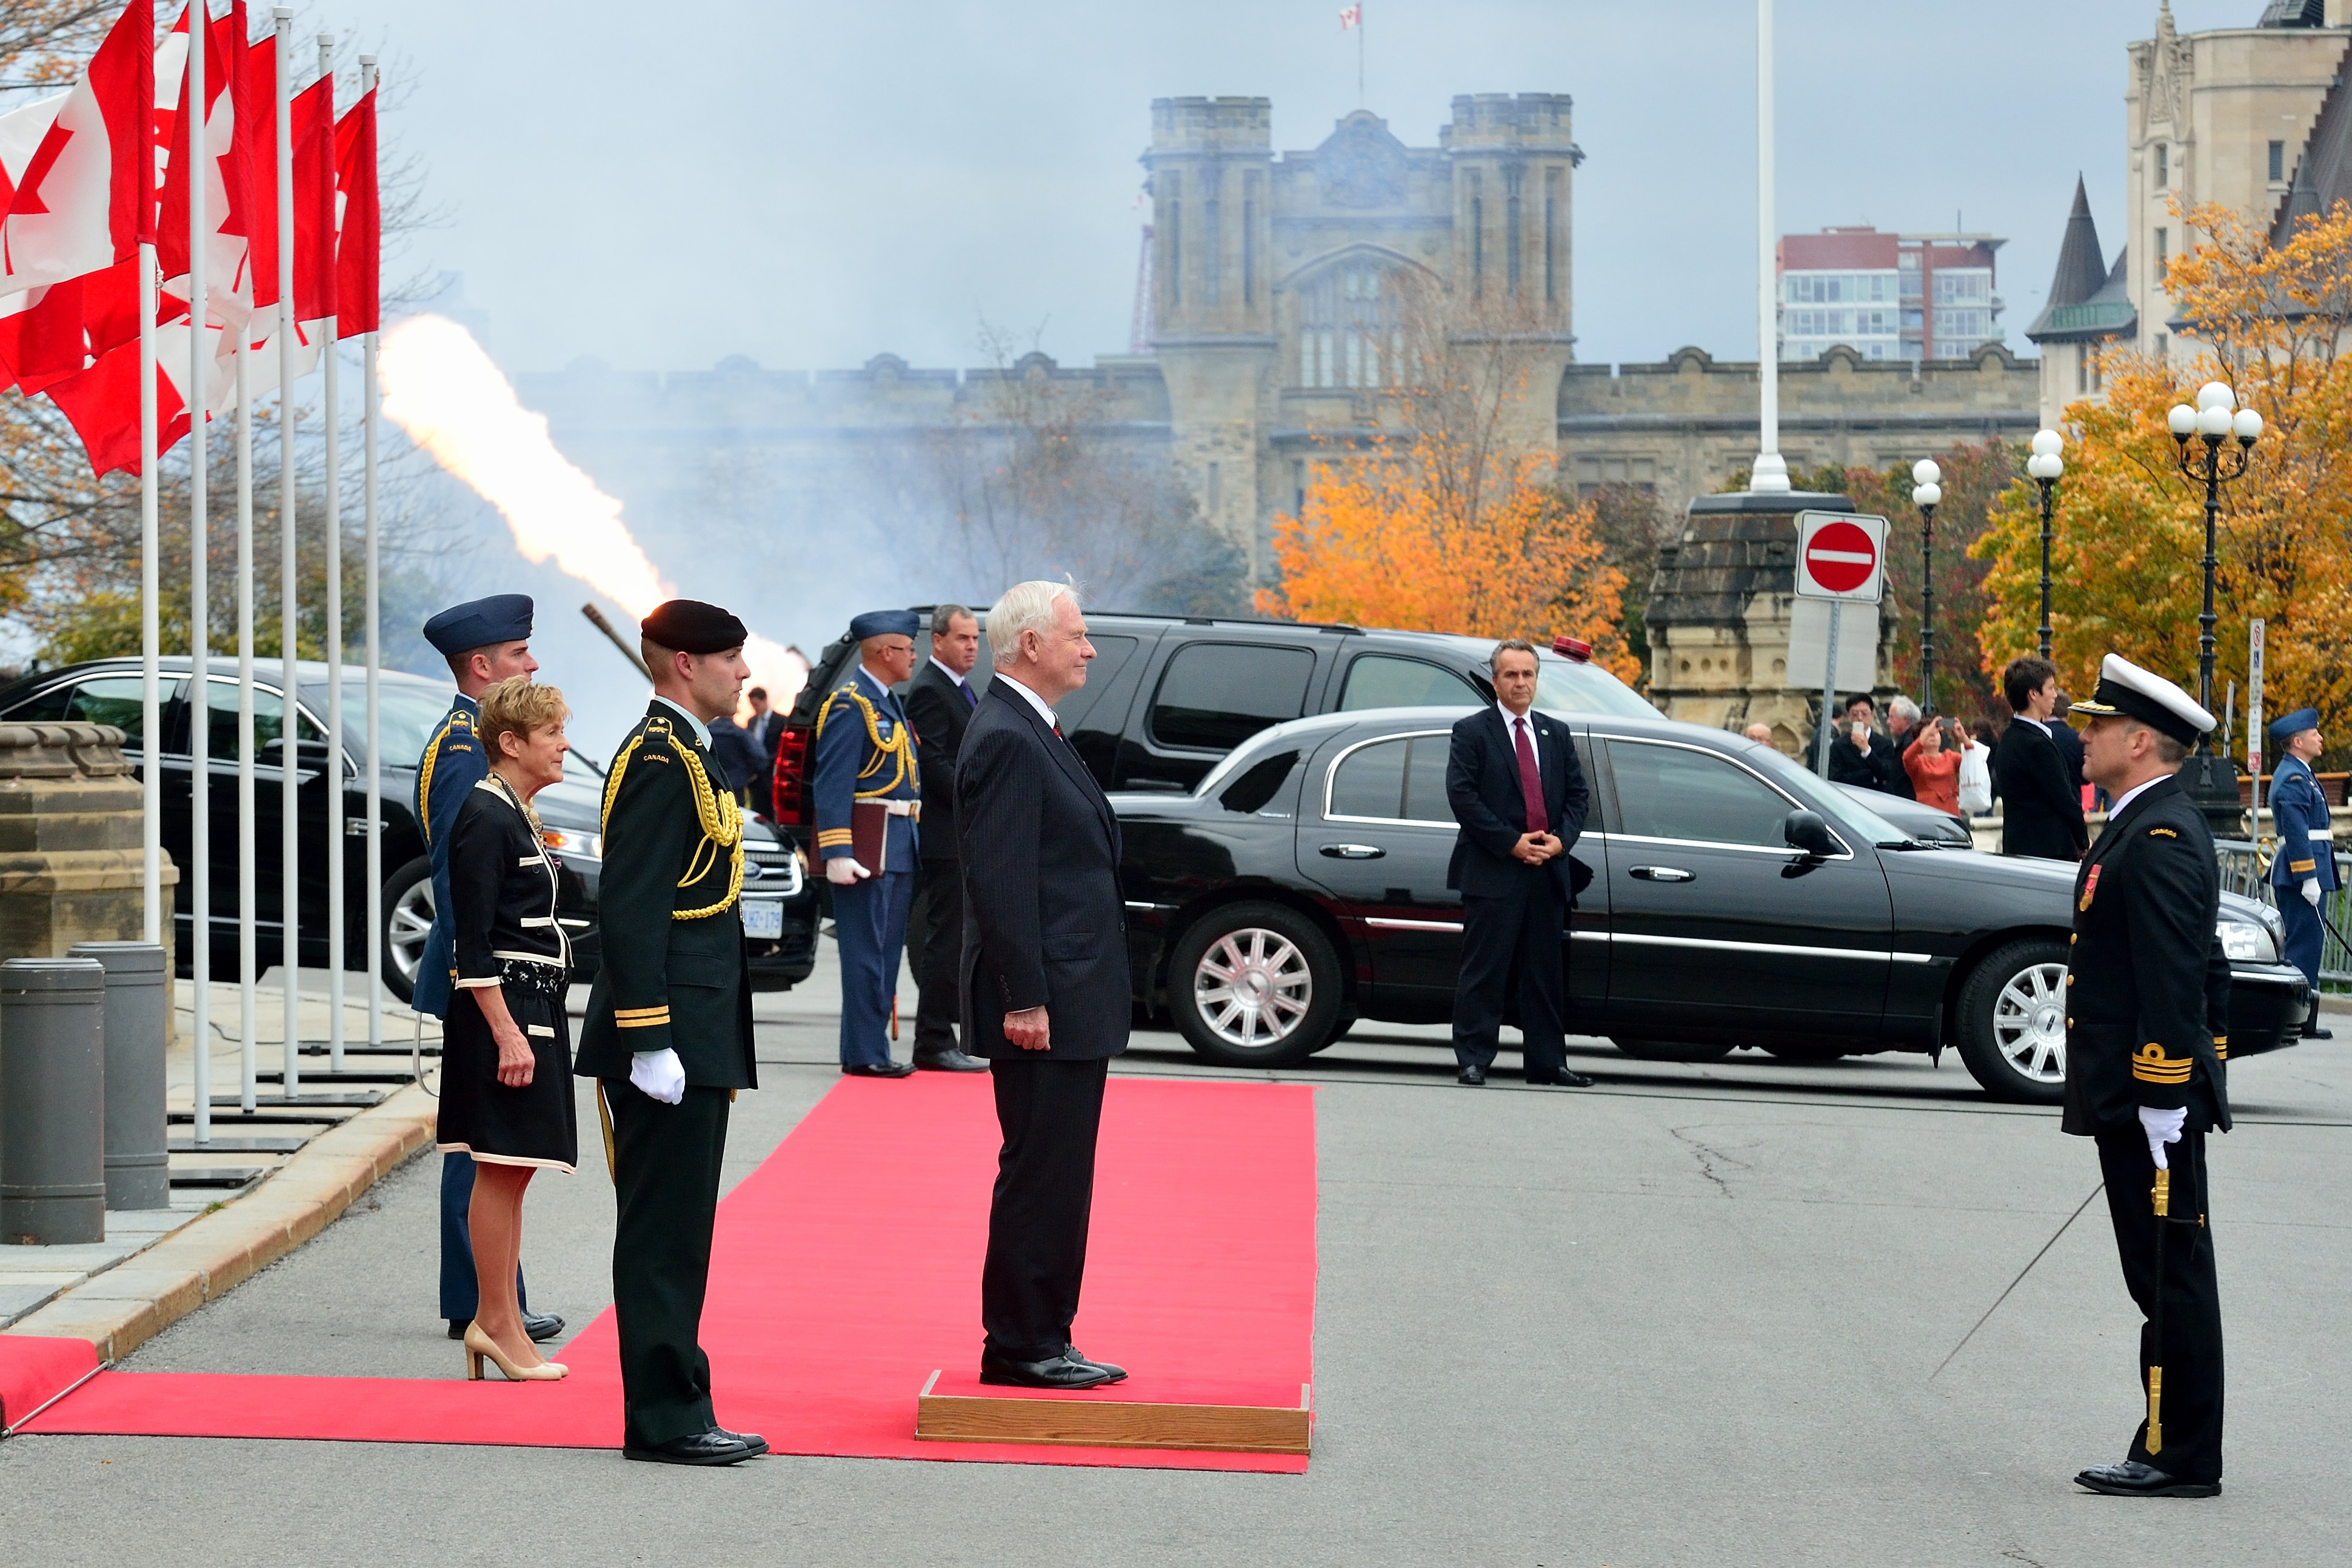 His Excellency the Right Honourable David Johnston, Governor General of Canada, receives the Royal Salute on the occasion of the Speech from the Throne held on October 16, 2013.